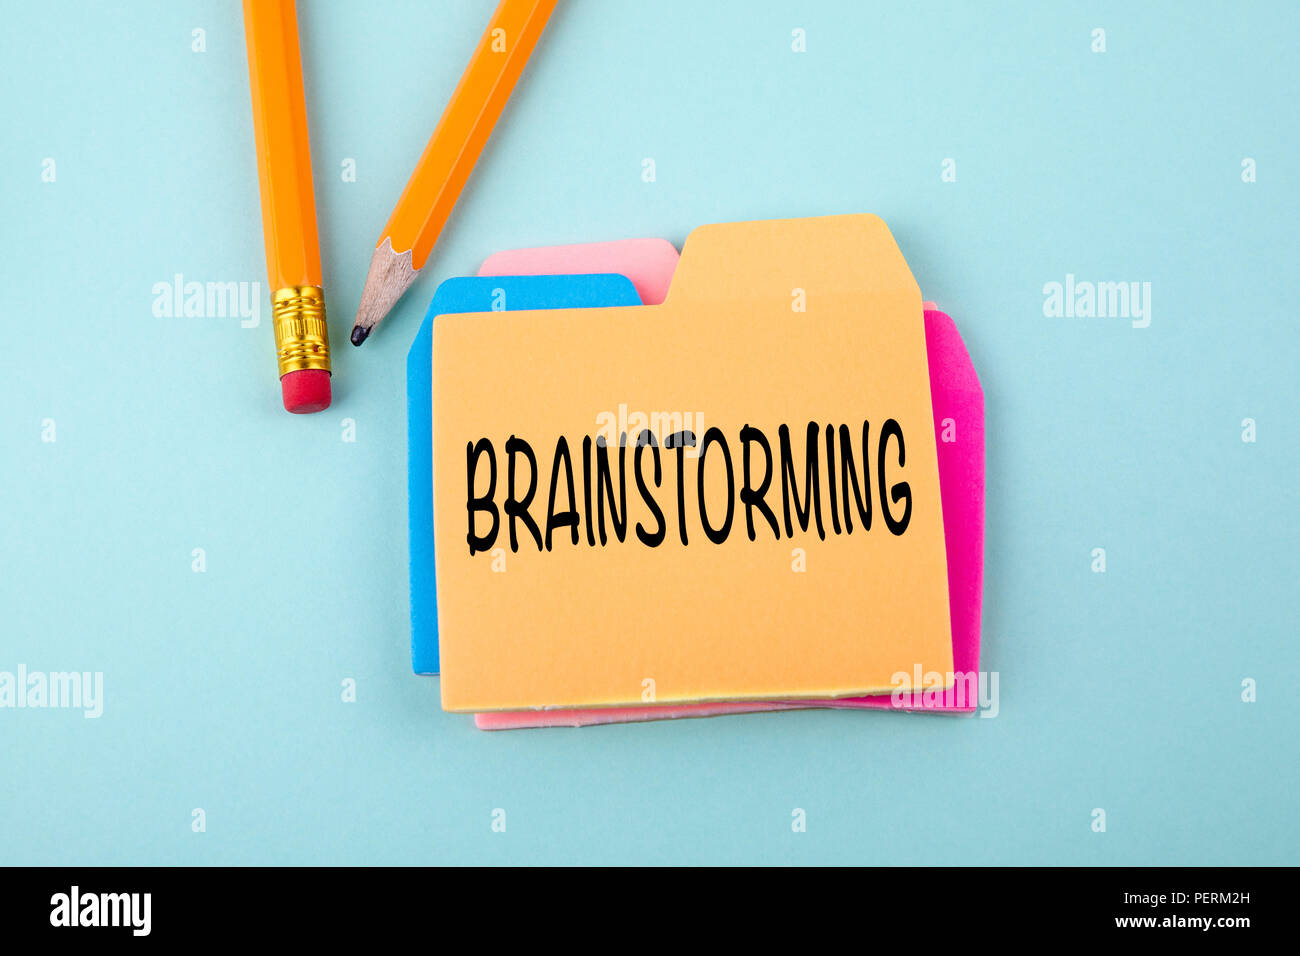 Brainstorming Business Konzept Stockbild